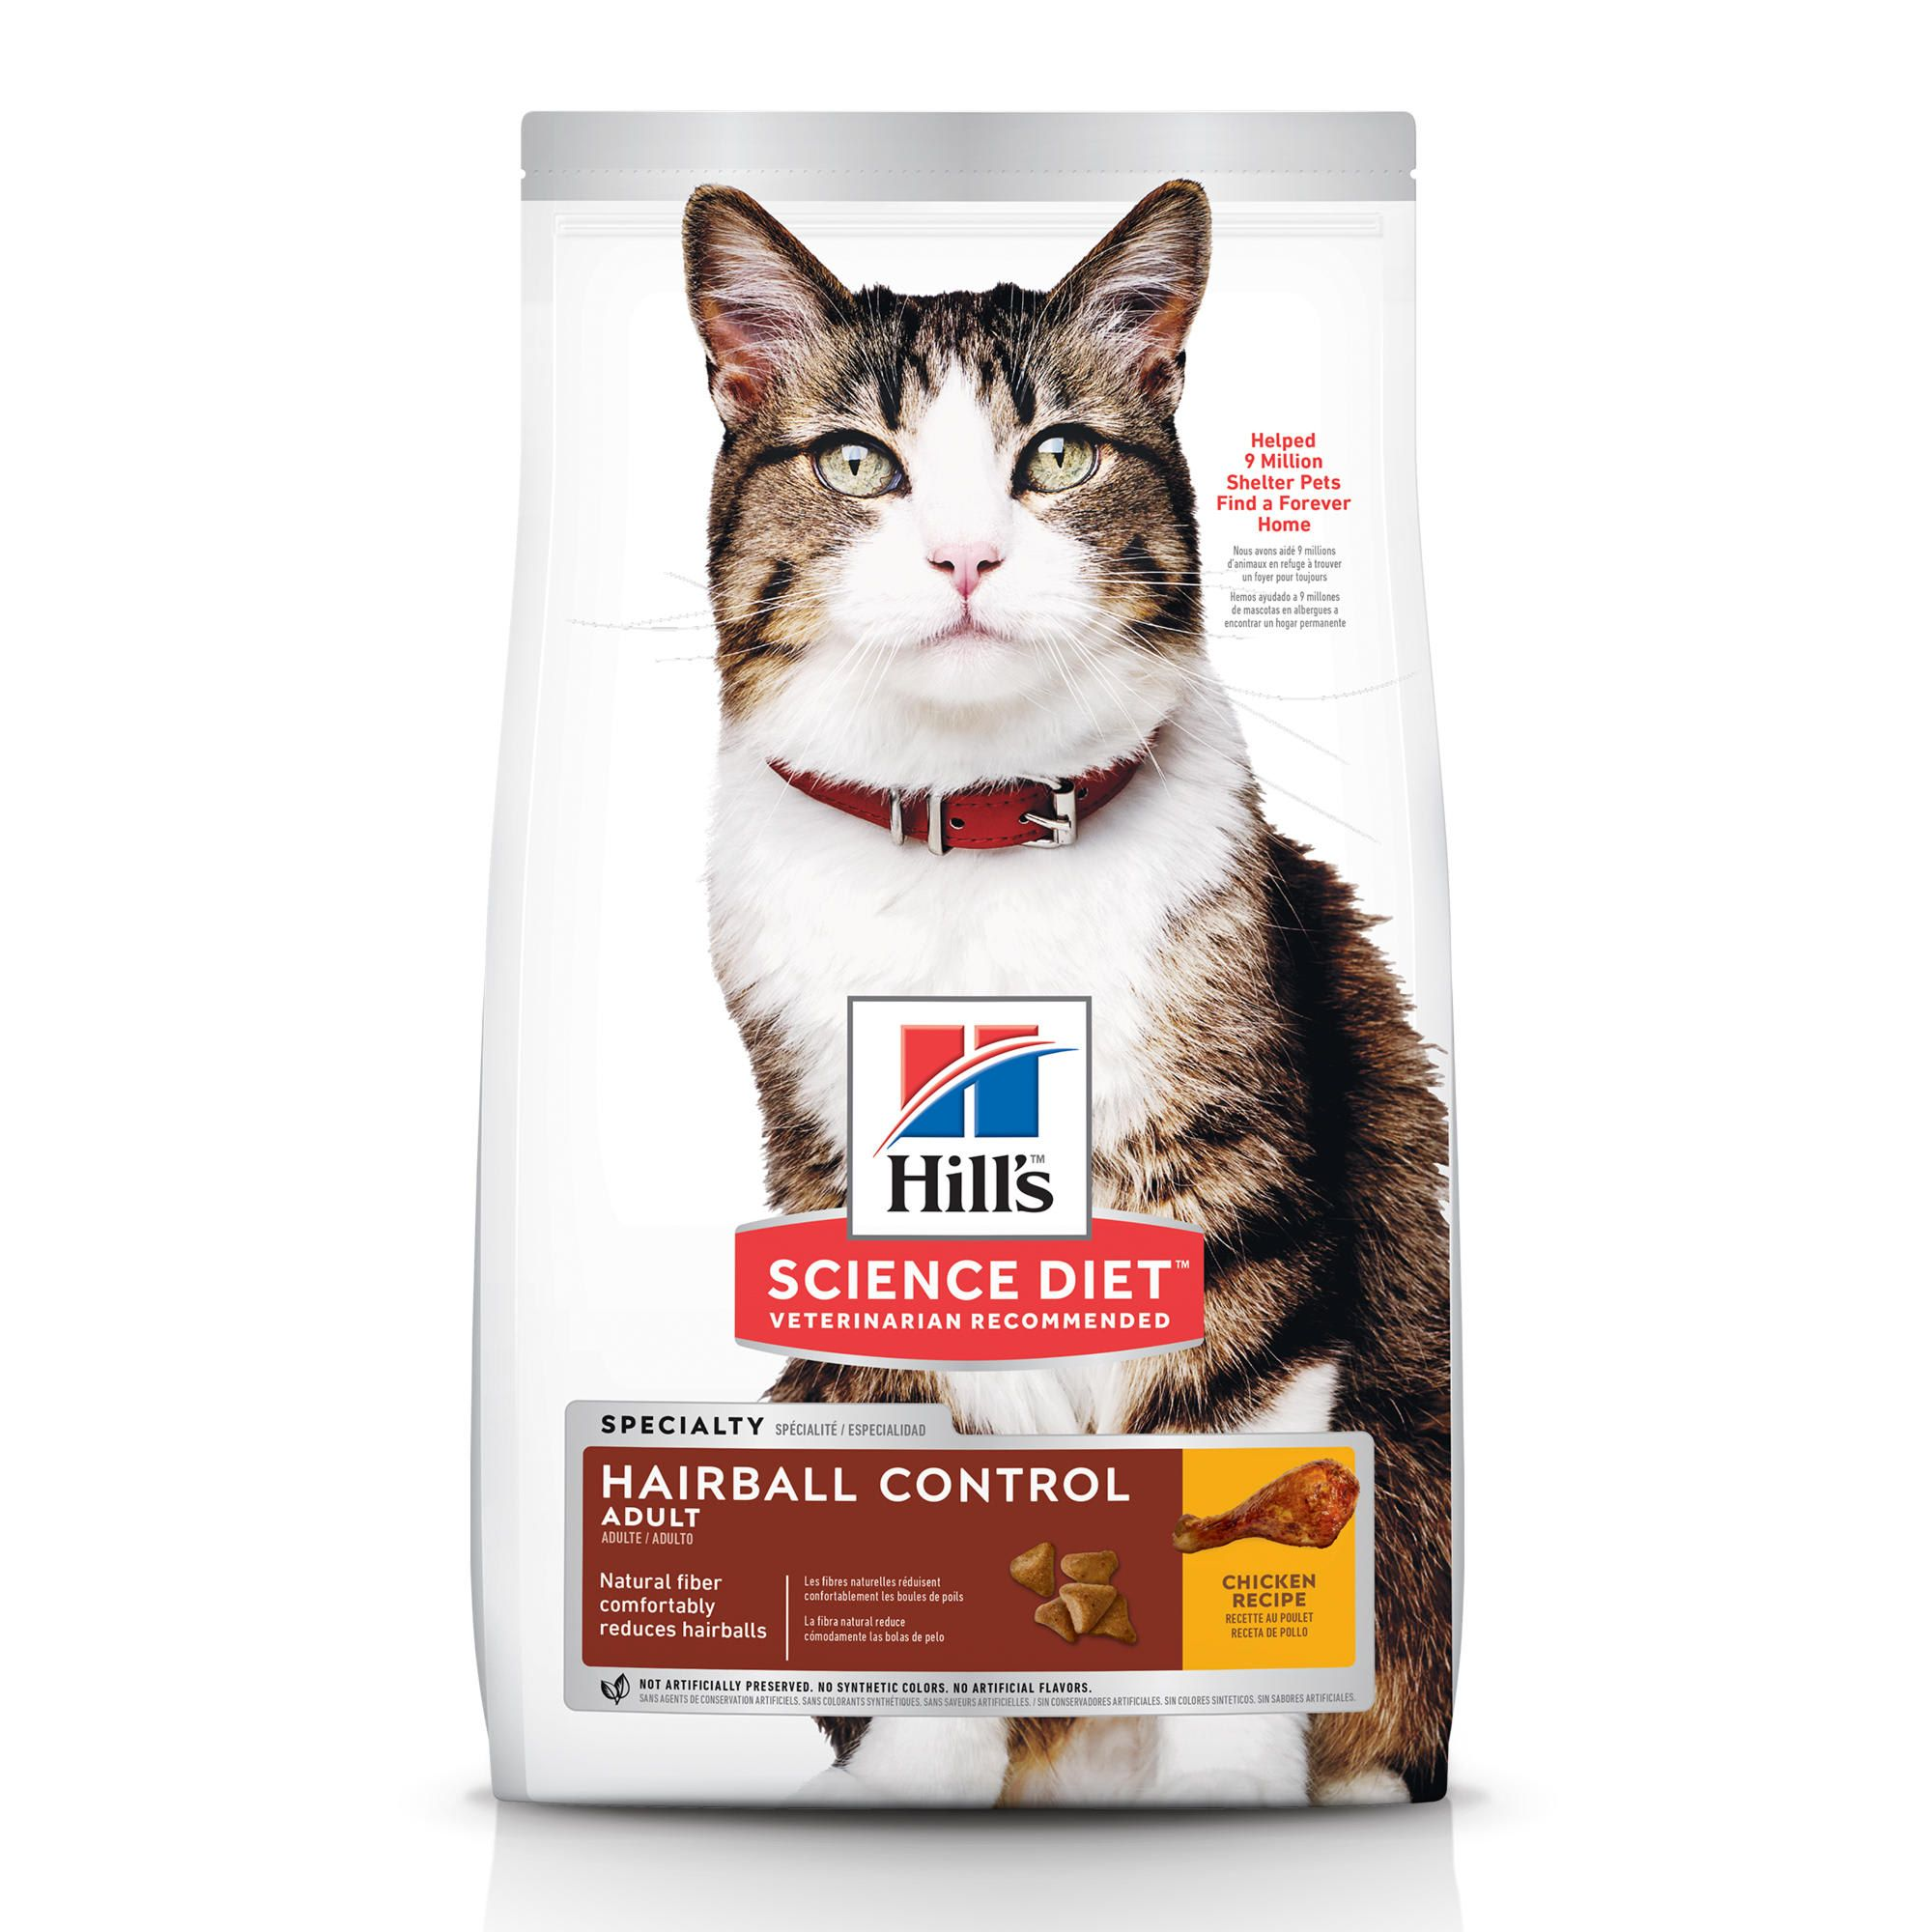 Hill S Science Diet Adult Hairball Control Chicken Recipe Dry Cat Food 15 5 Lbs In 2020 Hills Science Diet Science Diet Dry Cat Food